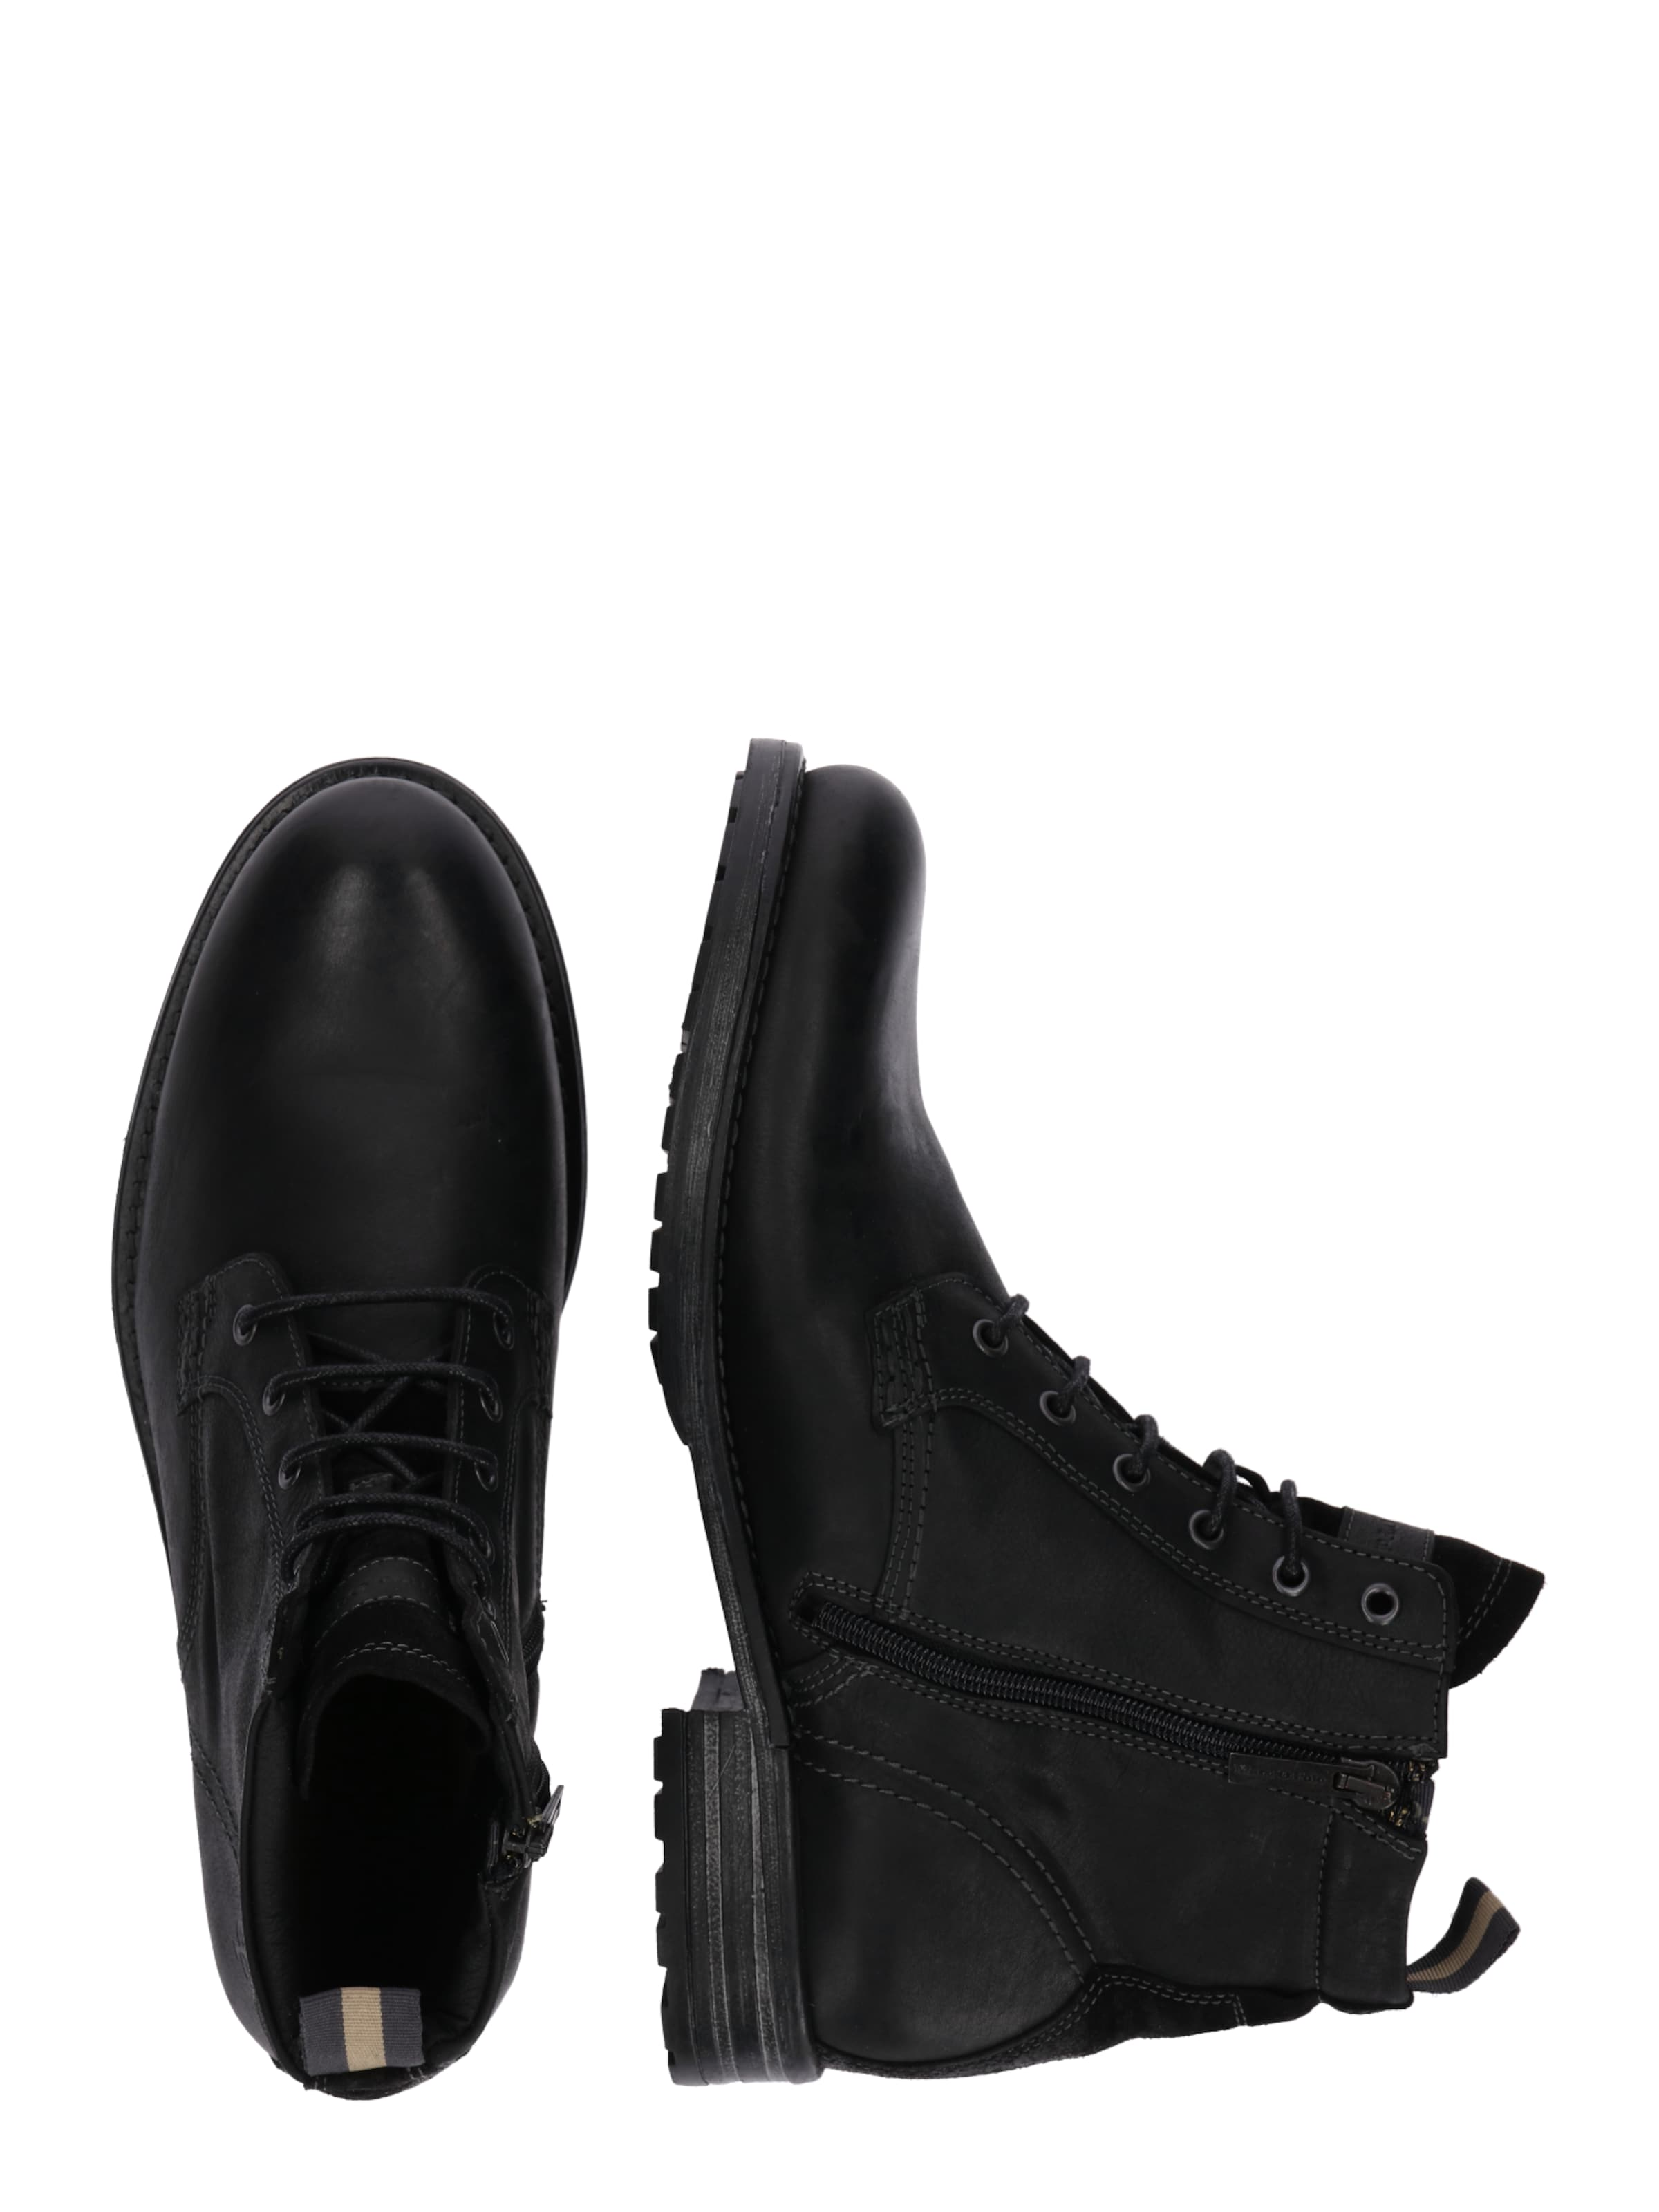 O'polo Schnürboots Schnürboots In In In Marc Schwarz O'polo Marc O'polo Schnürboots Schwarz Marc rCQthdBsx